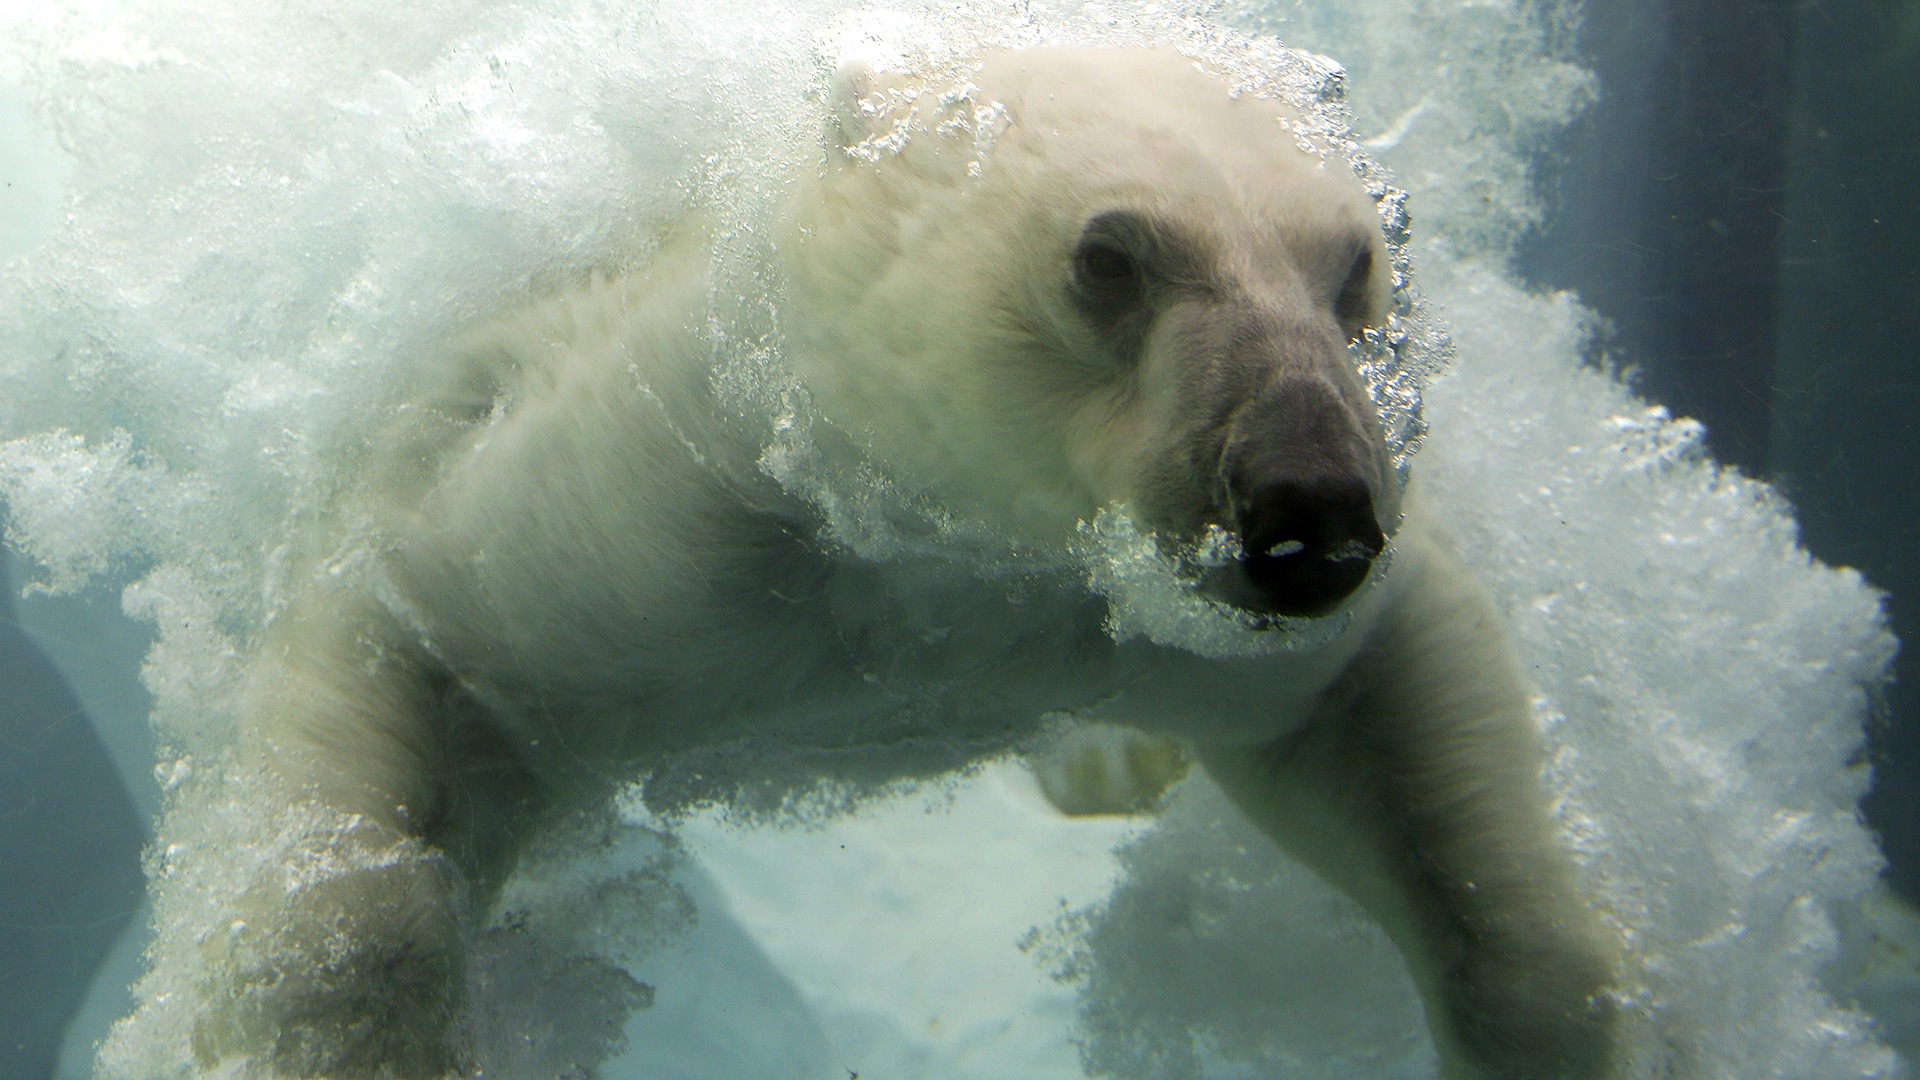 Image: Polar bear at Ueno Zoo